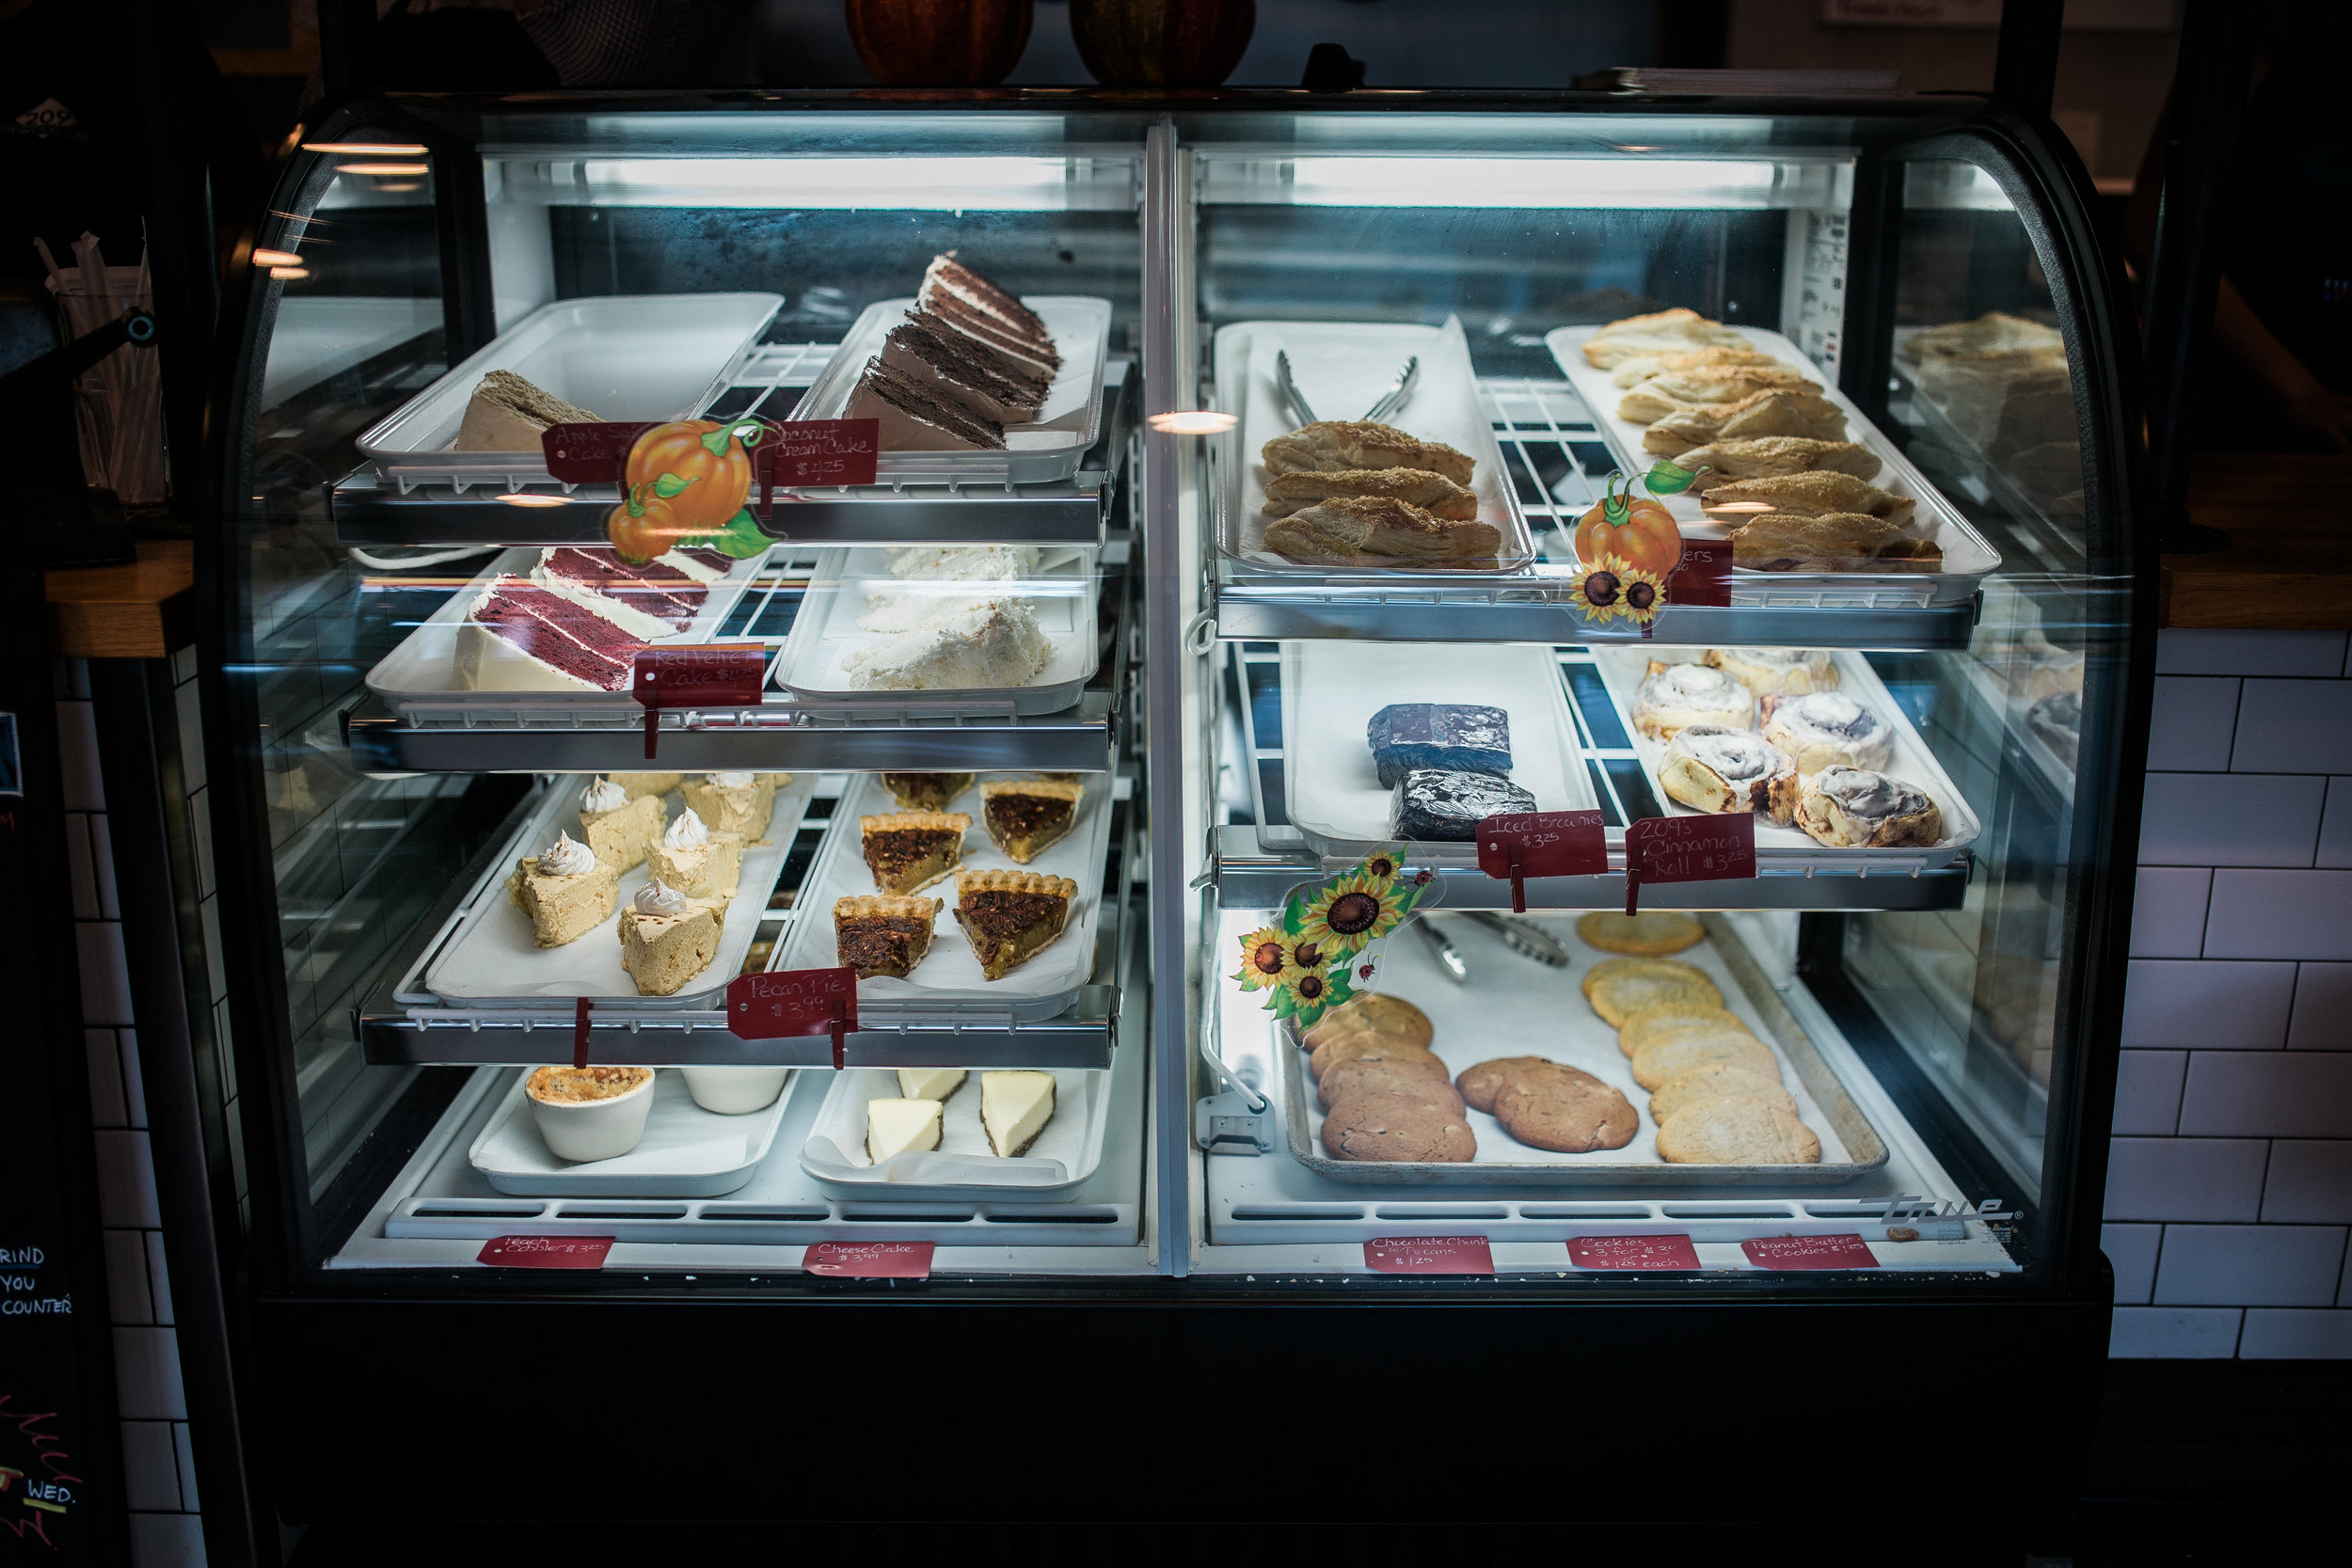 dessert display feauring pecan pie, red velvet cake, cookies, turnovers, and cheesecake